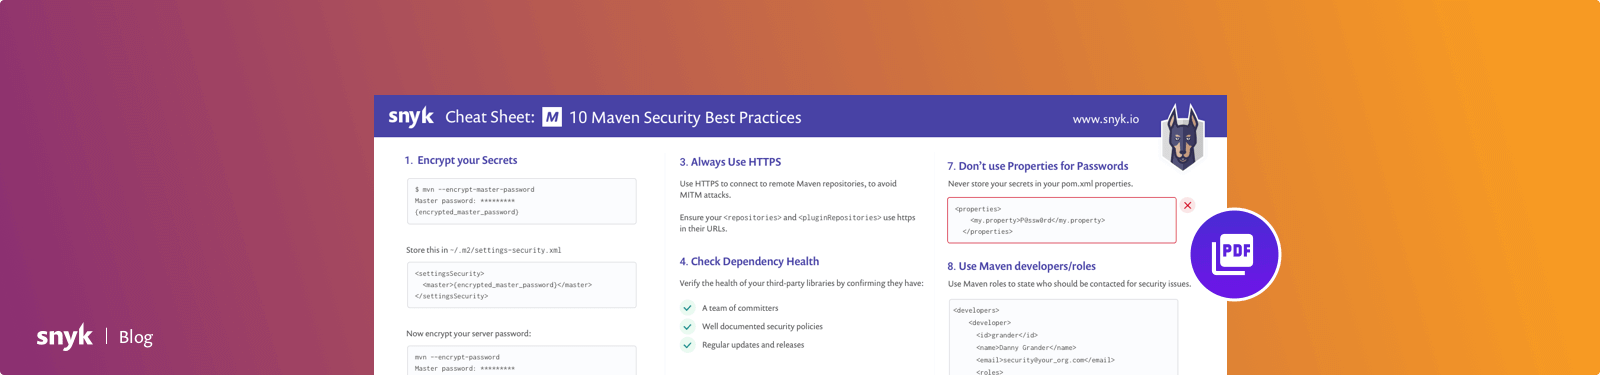 10 Maven Security Best Practices